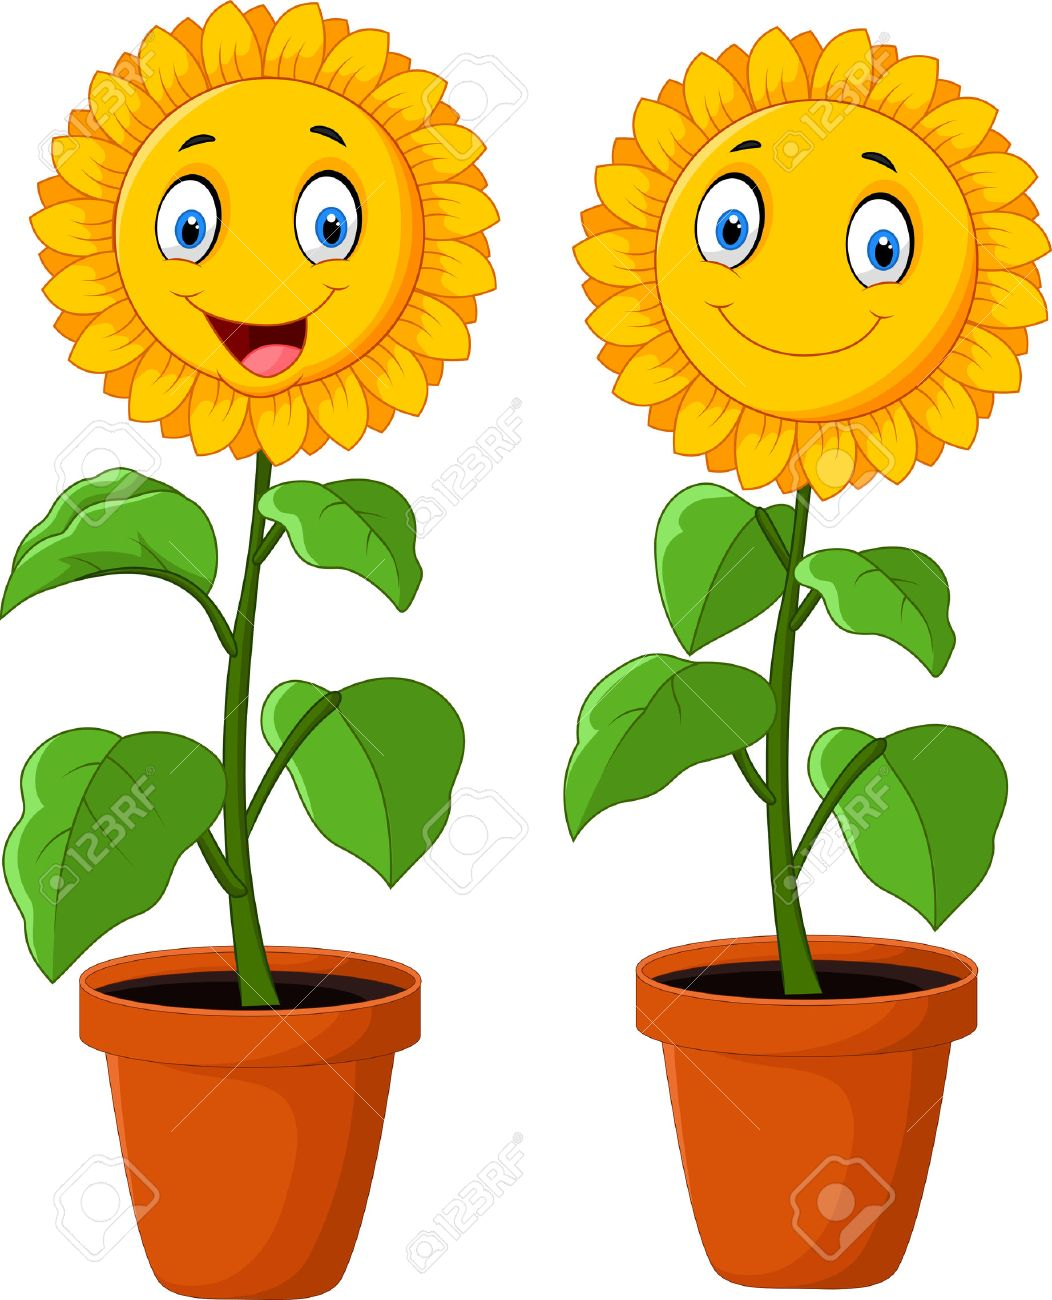 Happy sunflower clipart 5 » Clipart Station